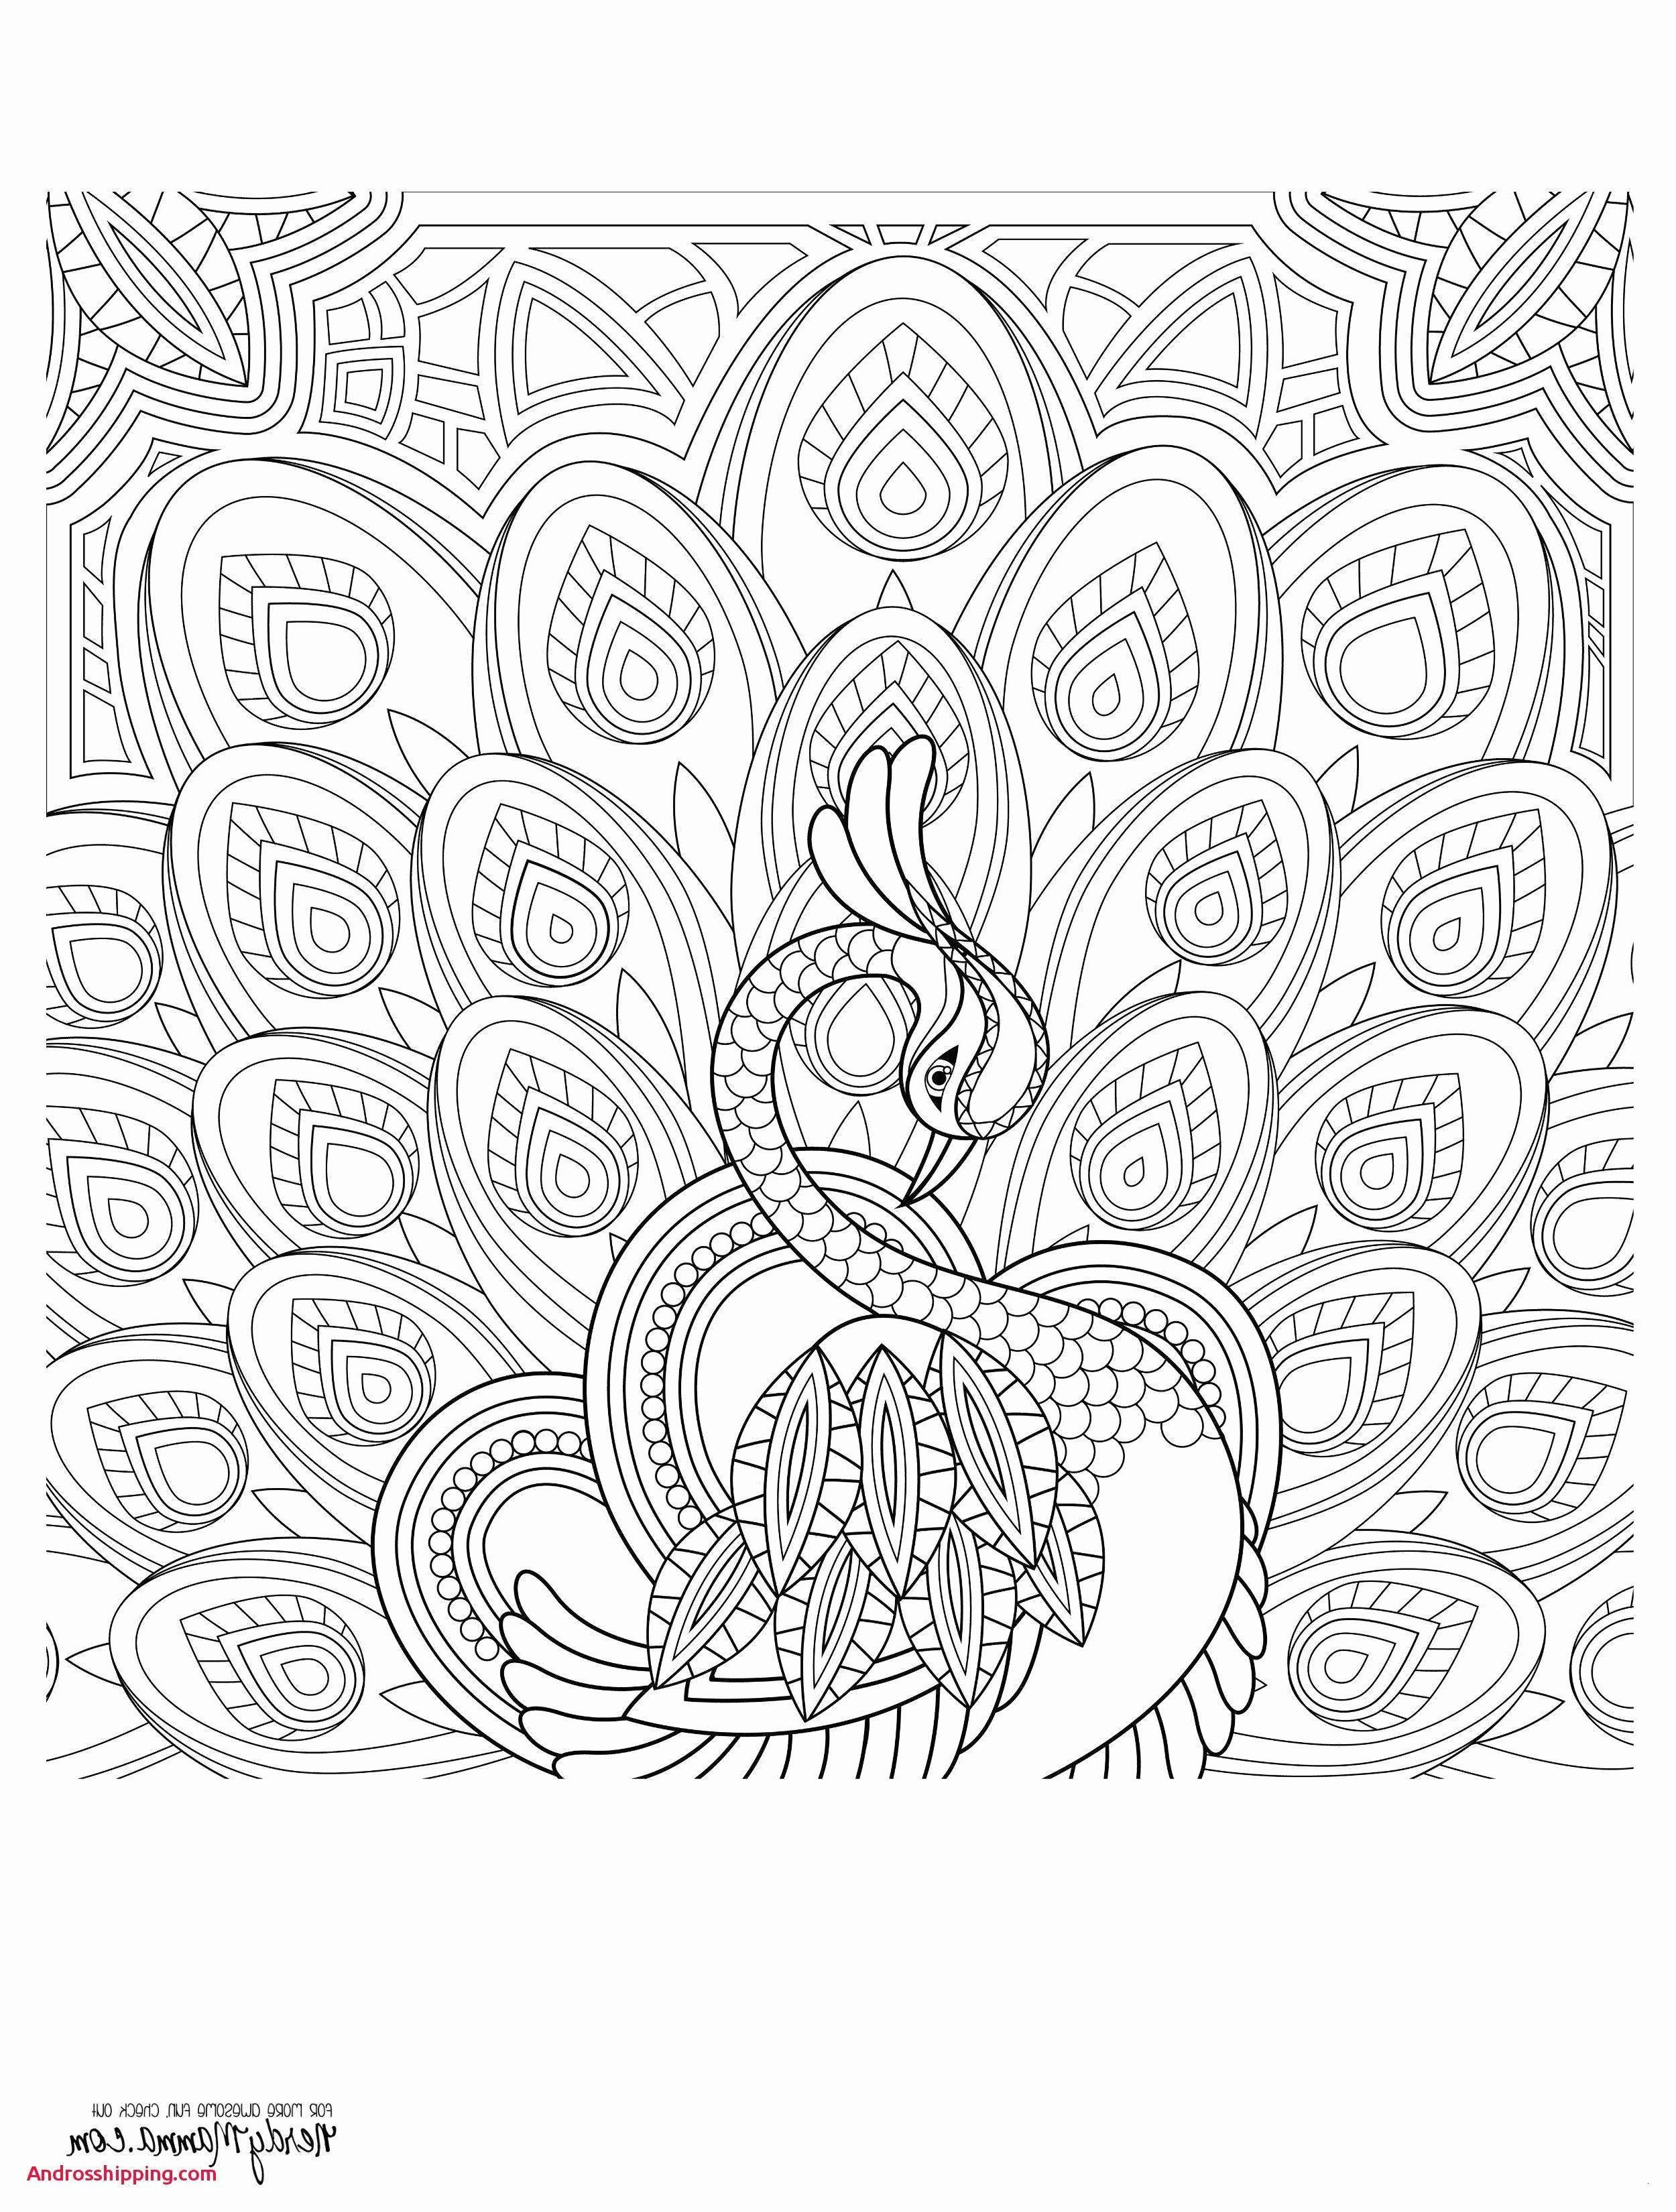 Number Coloring Pages Unicorn Unique Beautiful Color By Number Coloring Sheets Detailed Coloring Pages Pokemon Coloring Pages Fall Coloring Pages